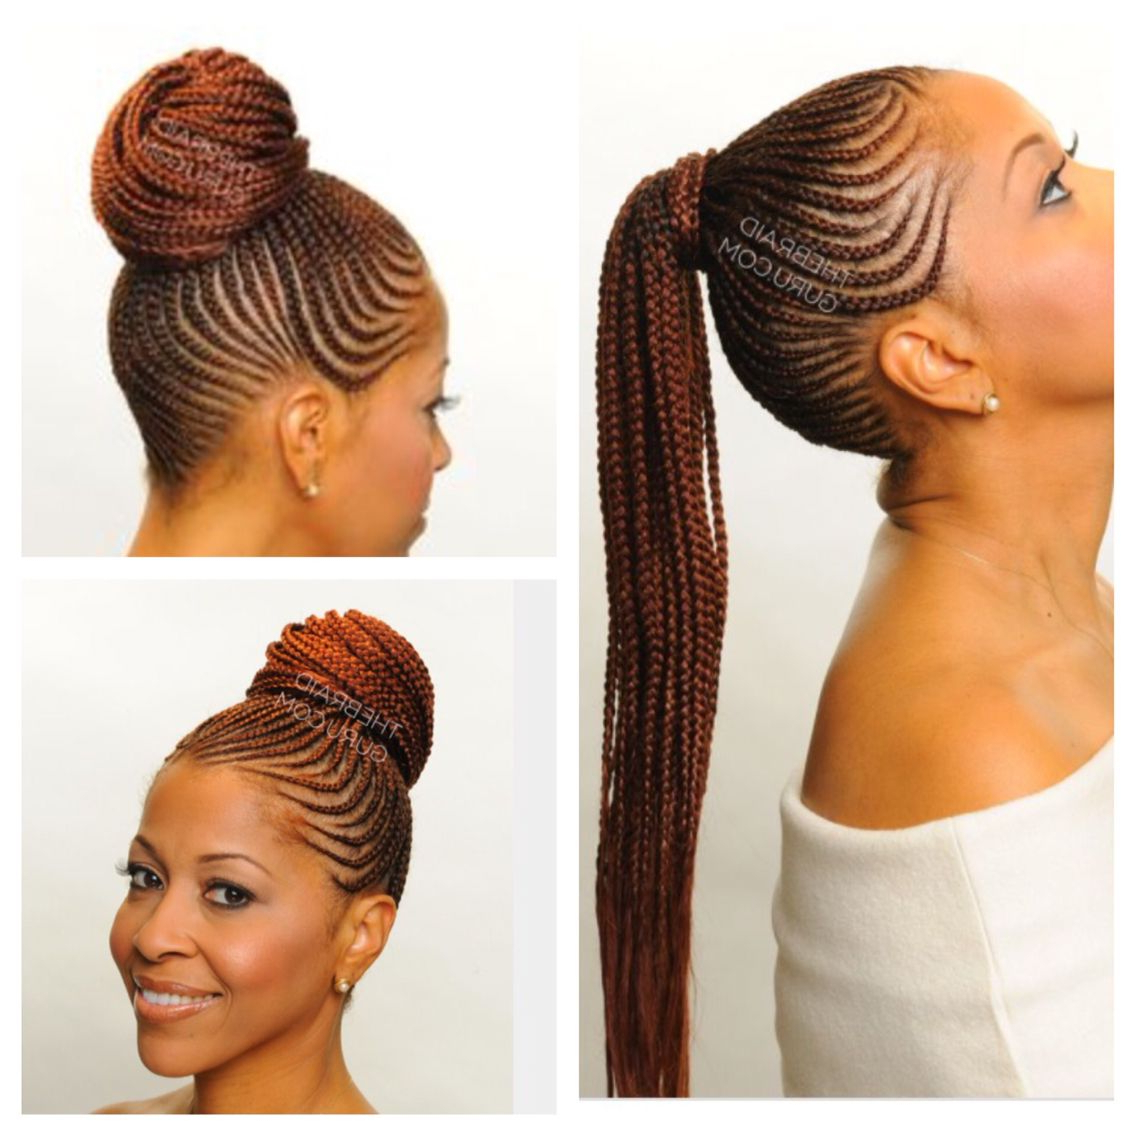 Braided Hairstyles, Cornrow Updo (View 11 of 20)